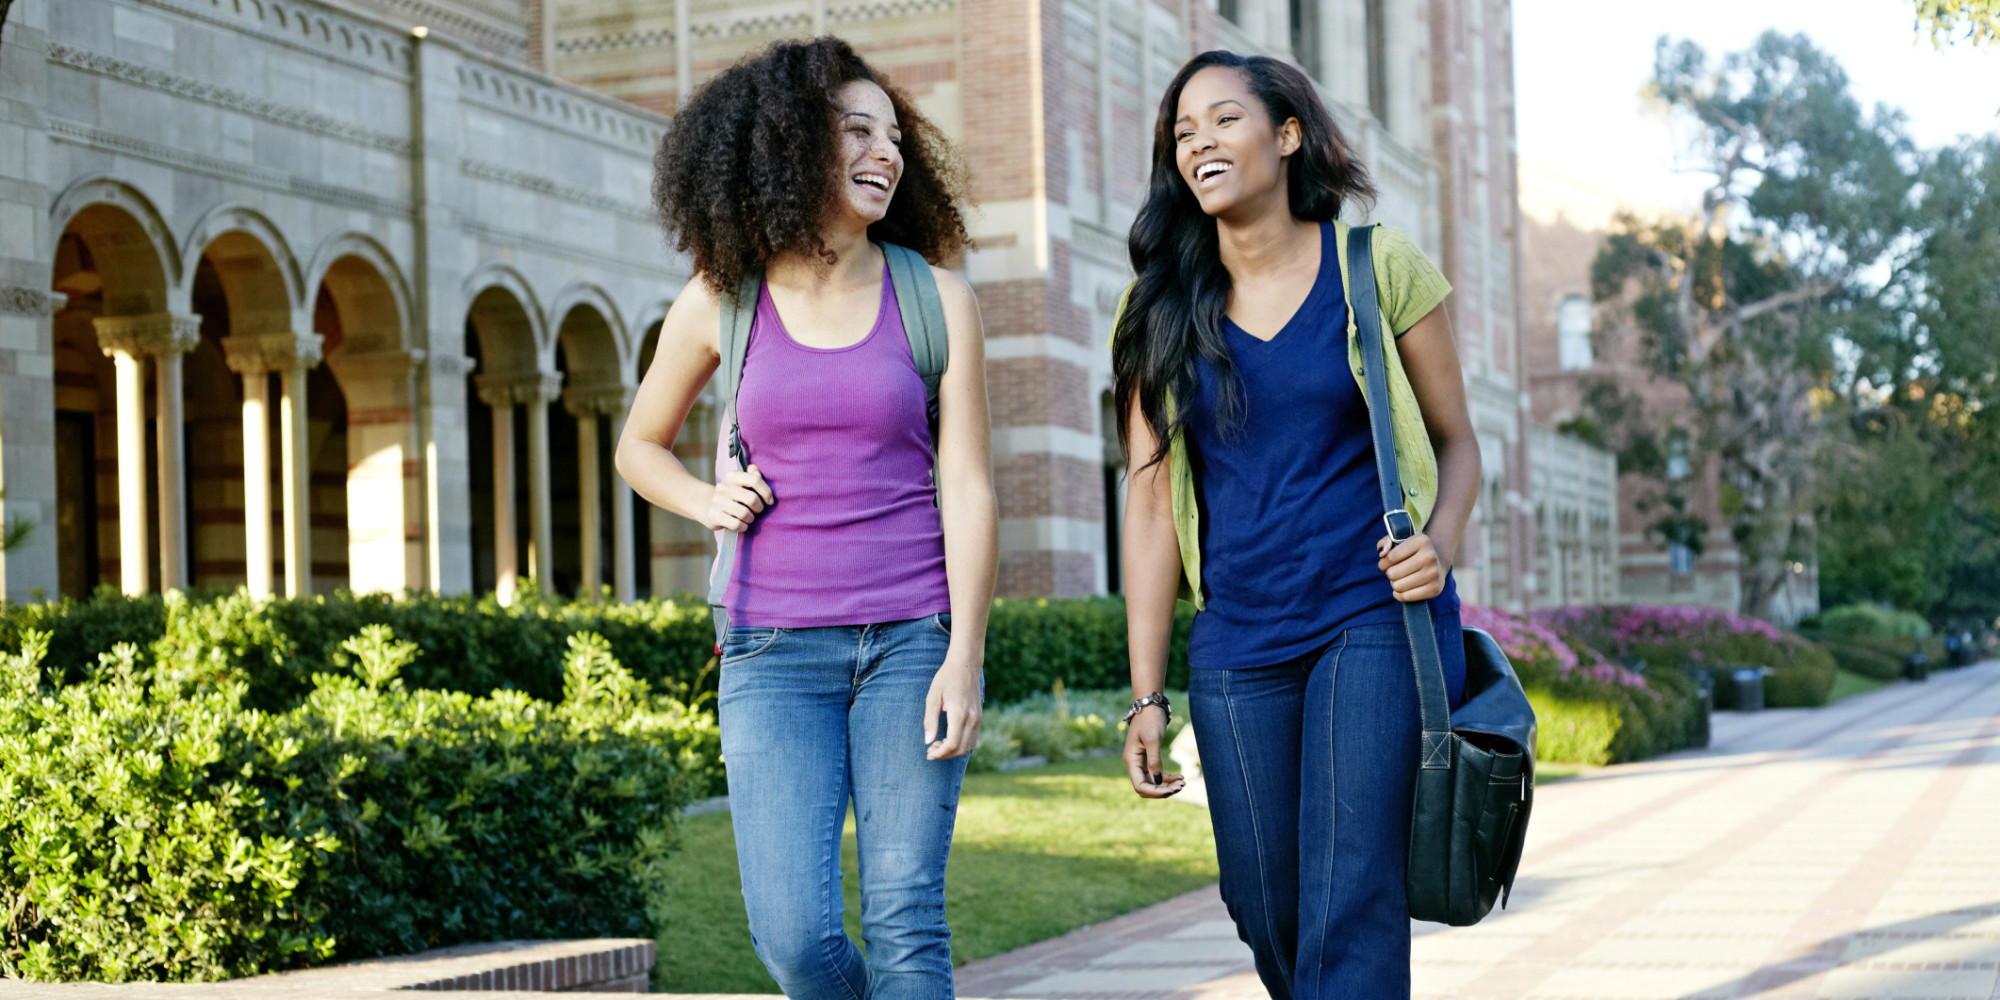 8 Things to Consider when selecting a College or University